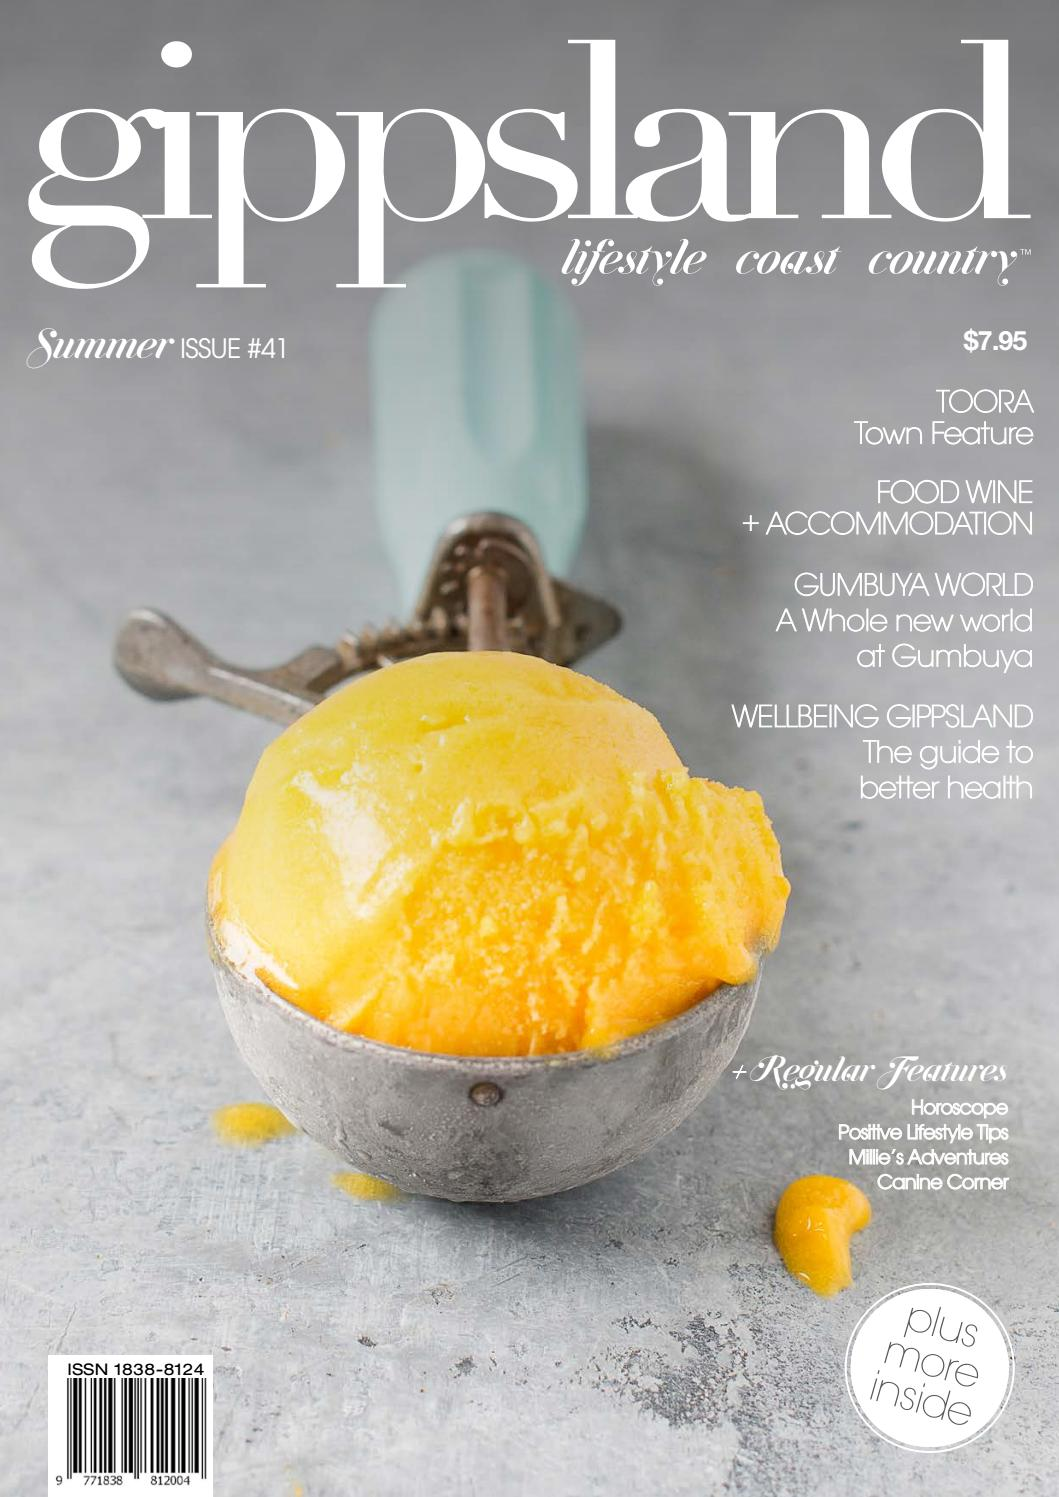 41 Gippsland Lifestyle Summer By Gippsland The Lifestyle Issuu